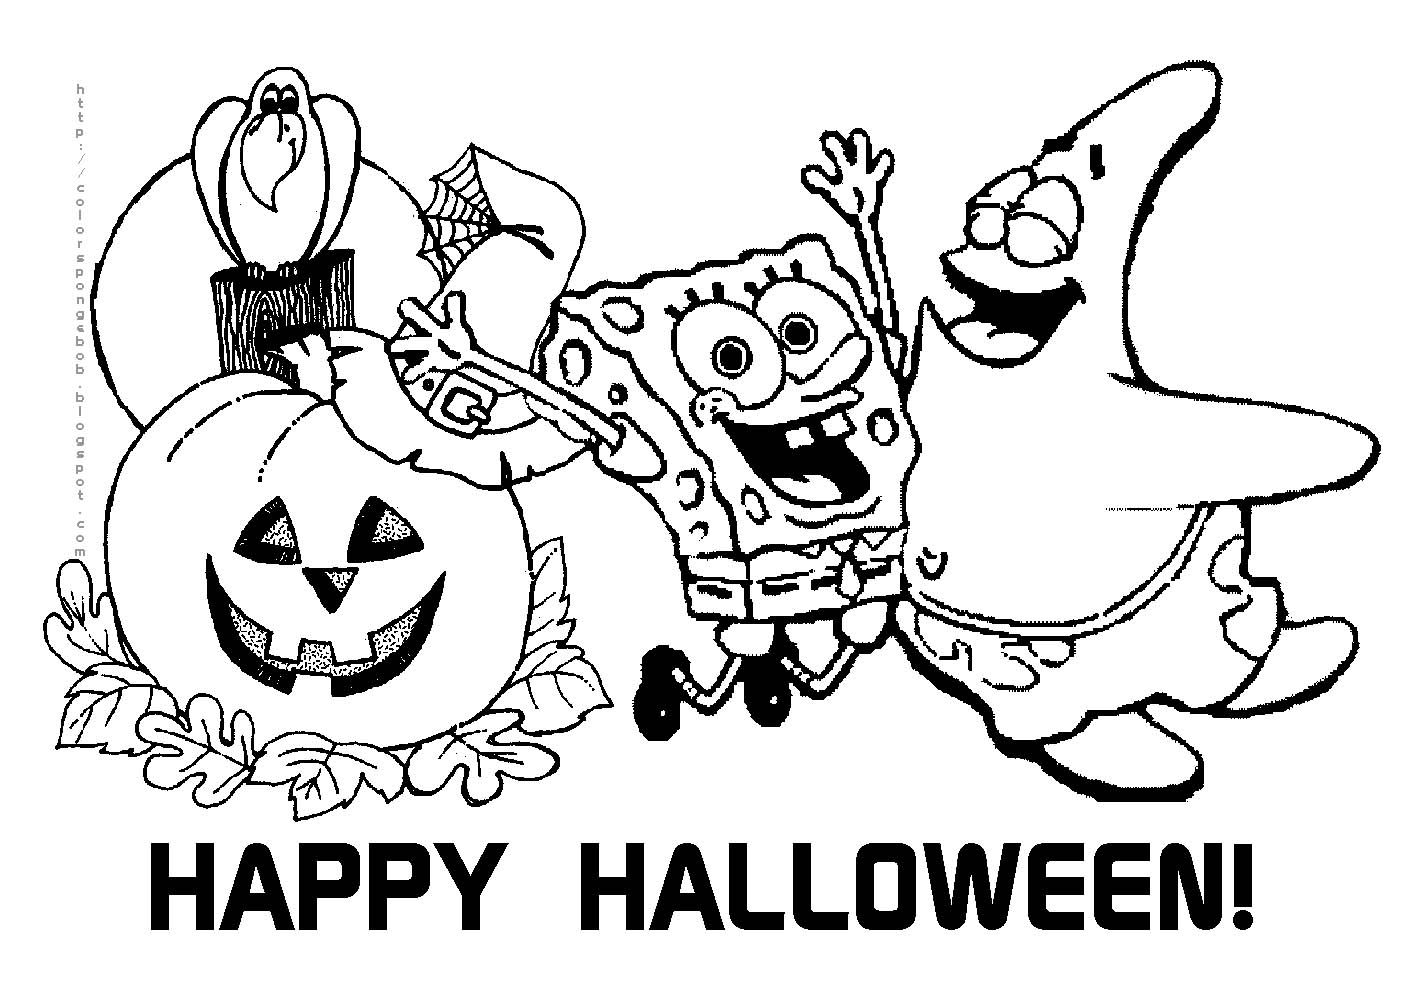 Color crew printables - Free Printable Halloween Calendar Halloween Spongebob Squarepants Coloring Sheet Free